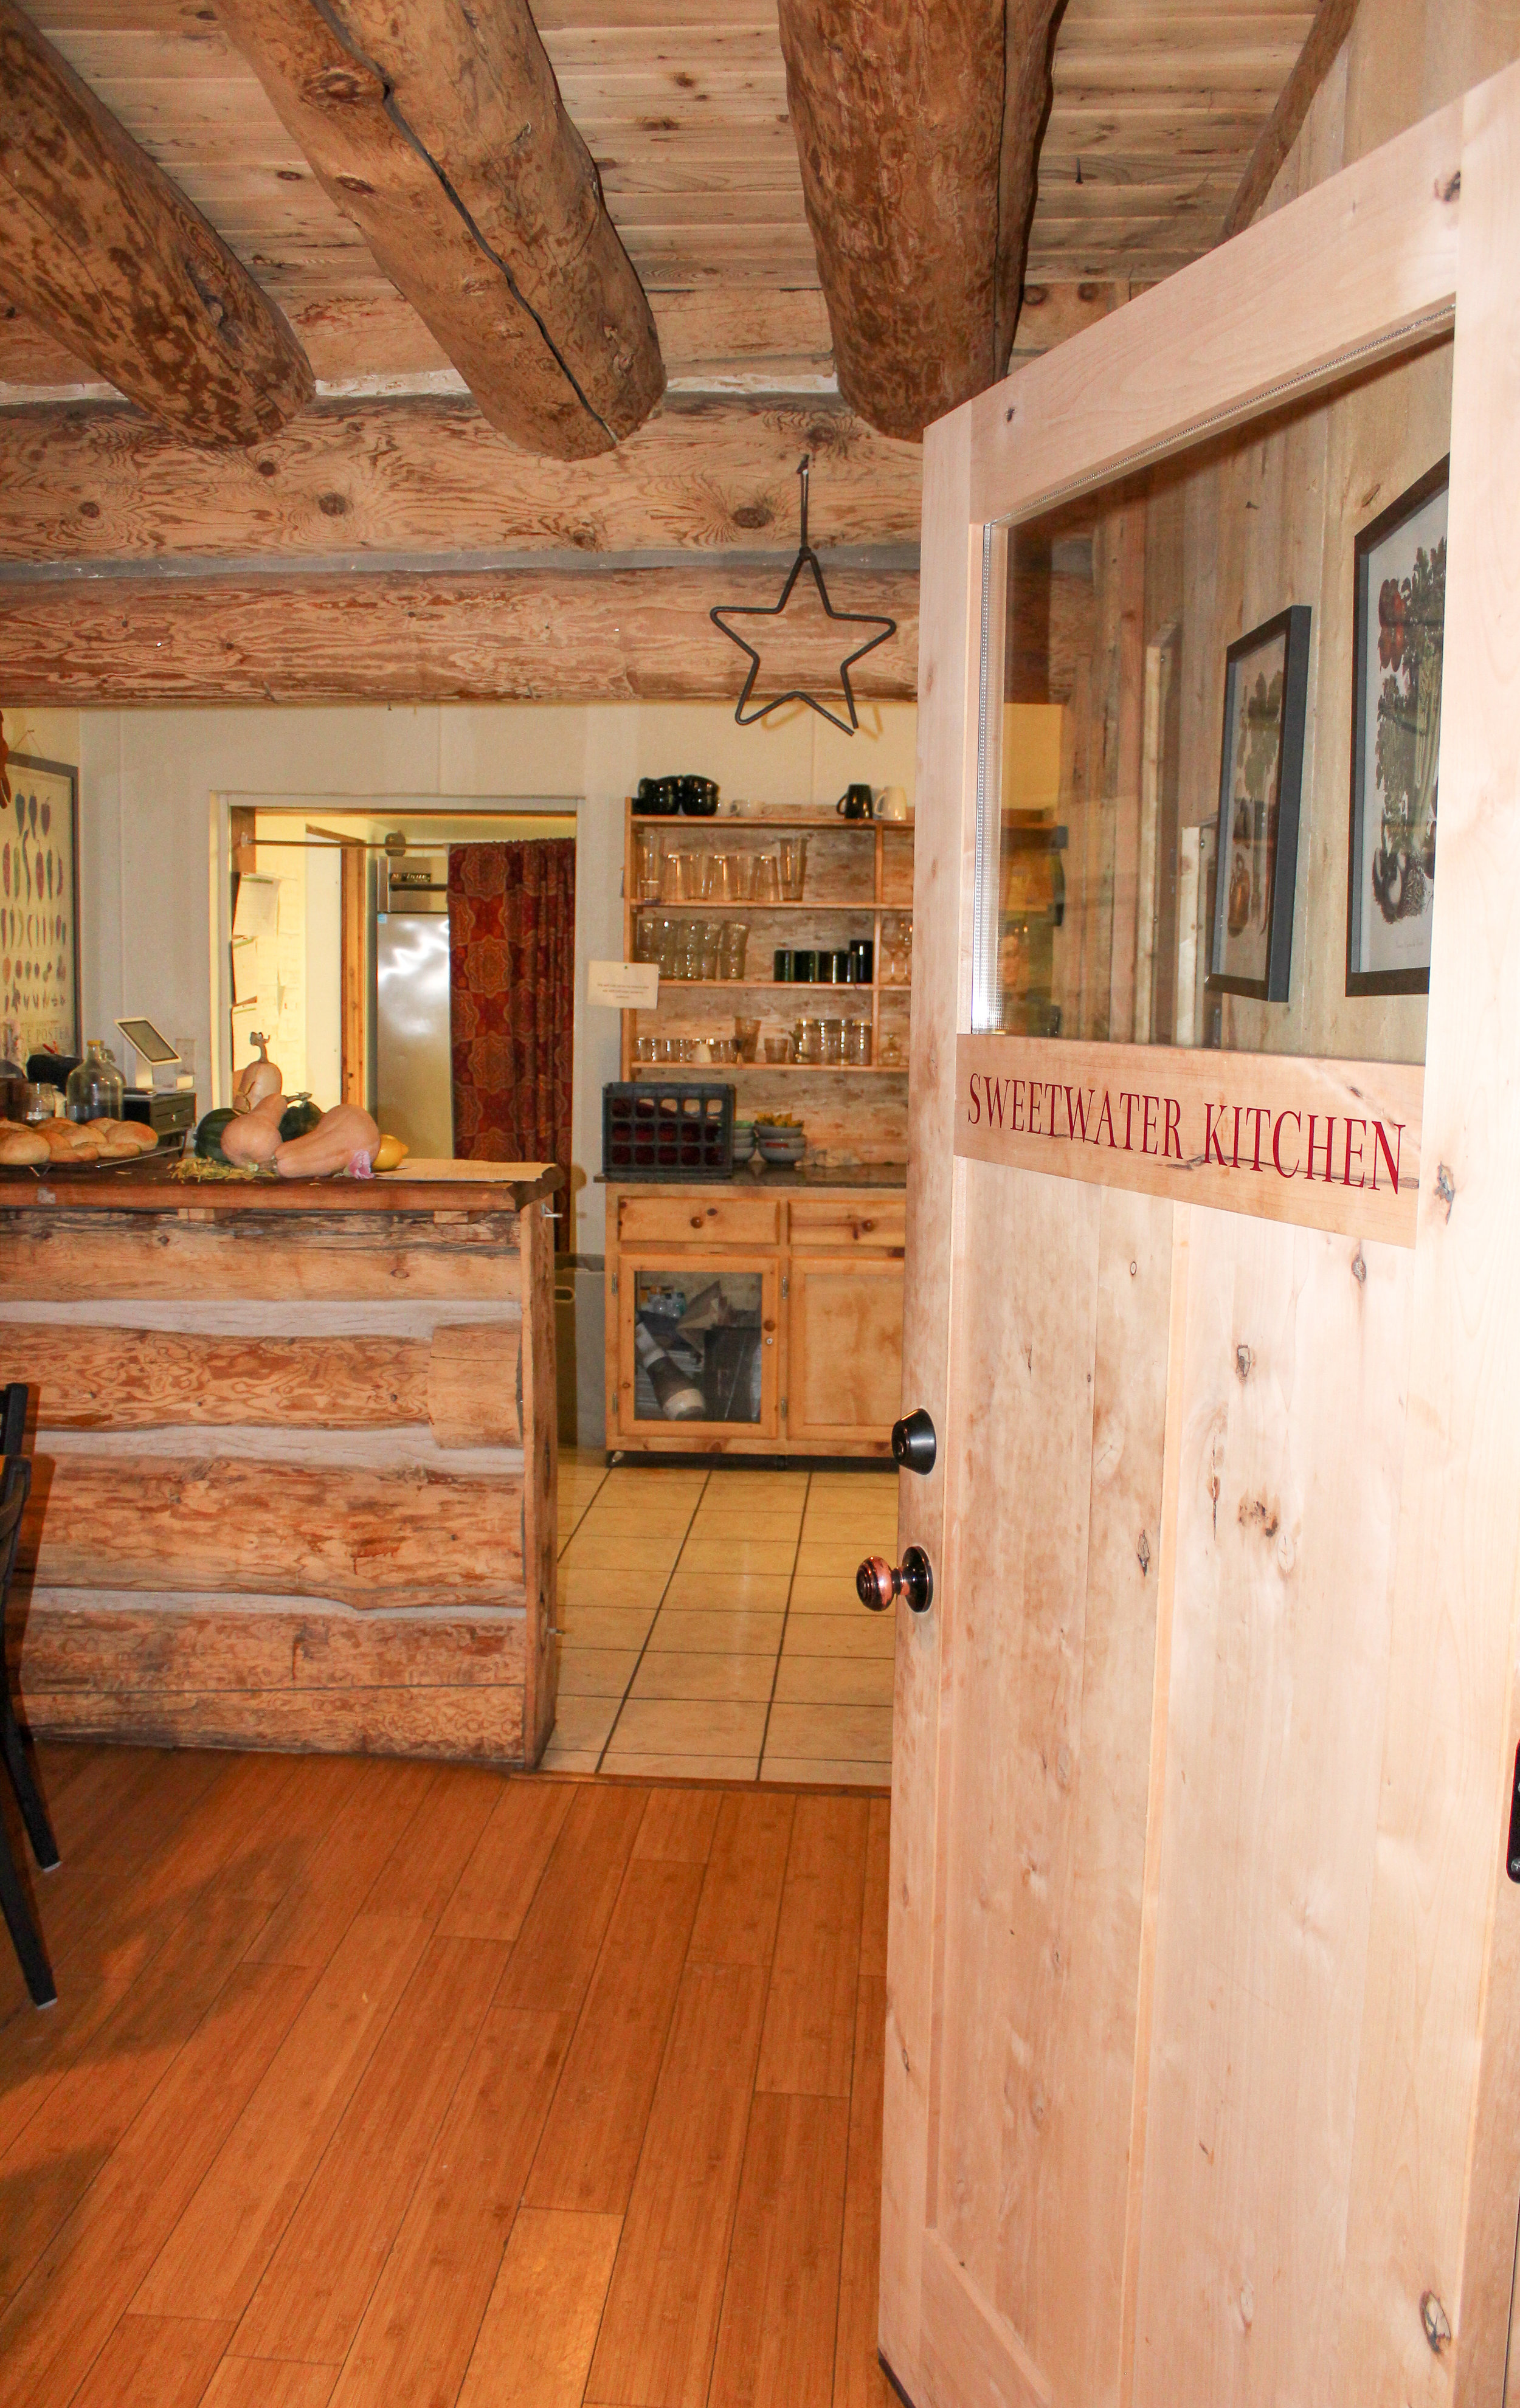 Entrance into Sweetwater Kitchen